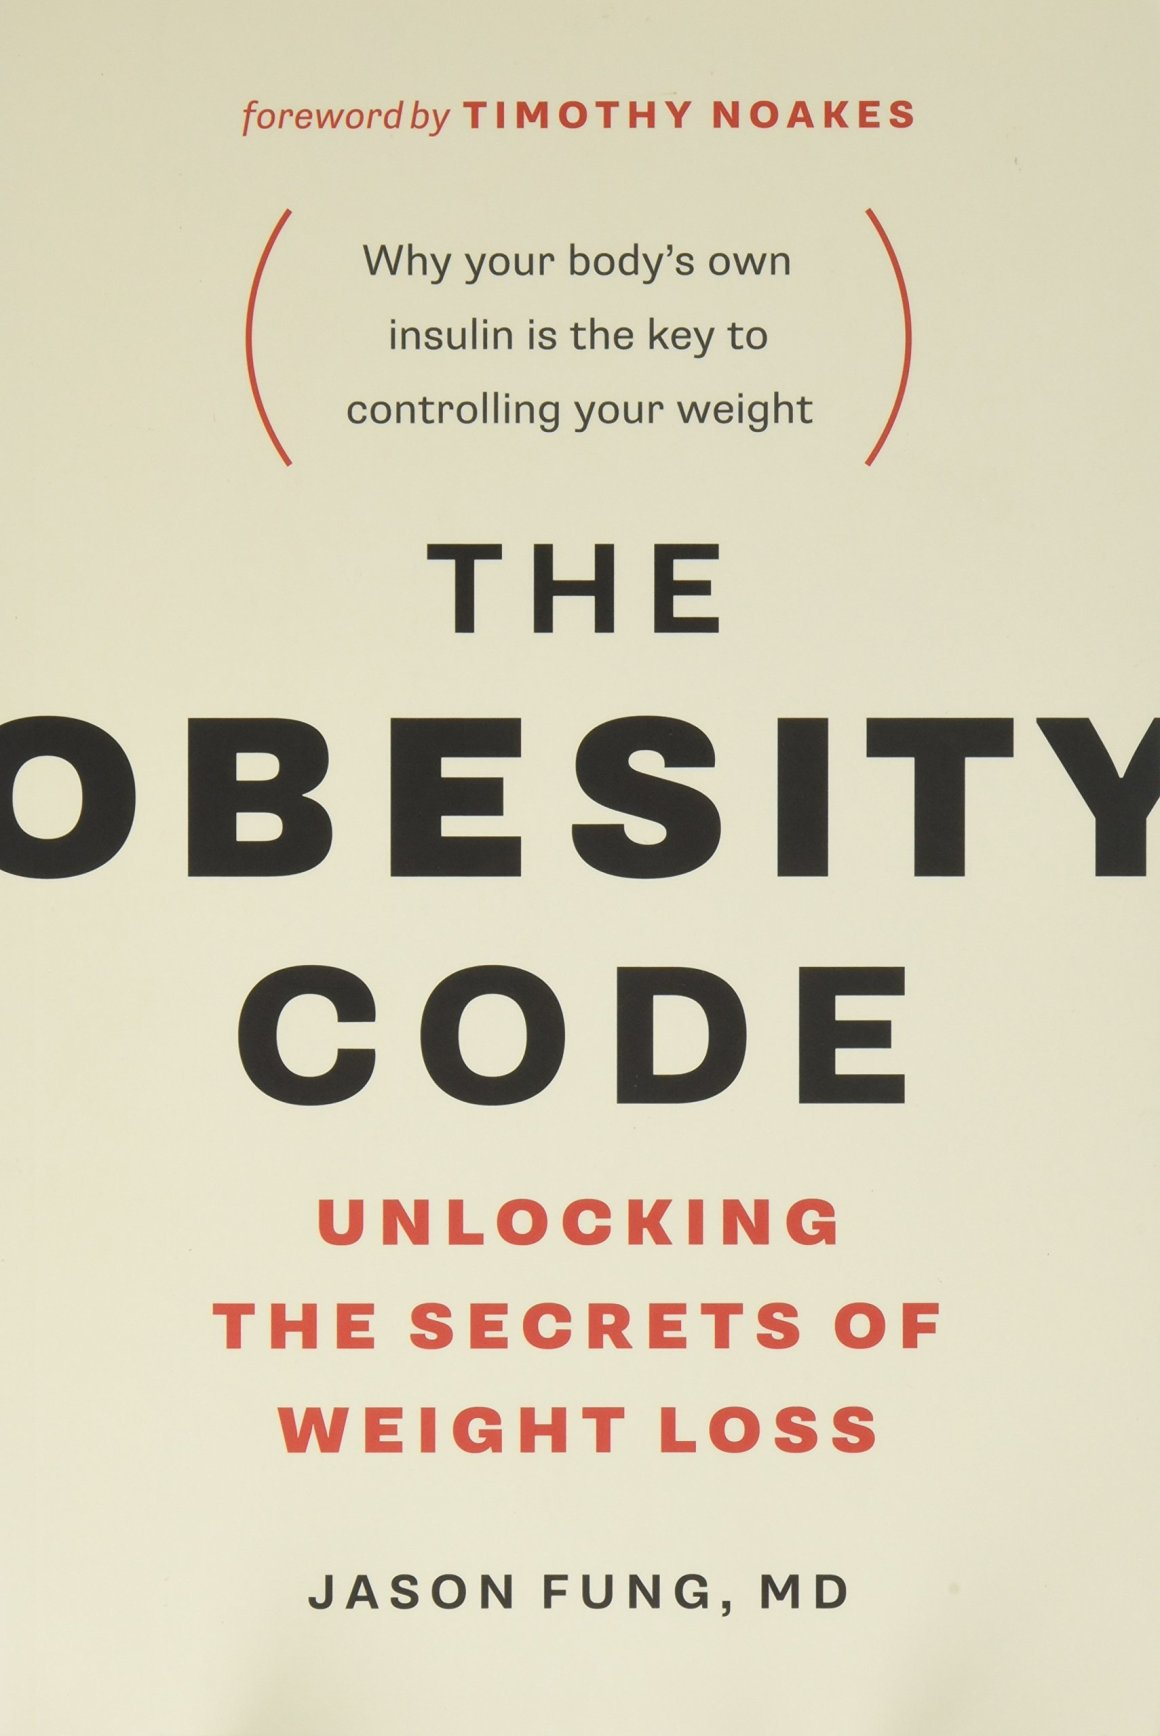 81OMW3oA%2BsL - The Obesity Code: Unlocking the Secrets of Weight Loss